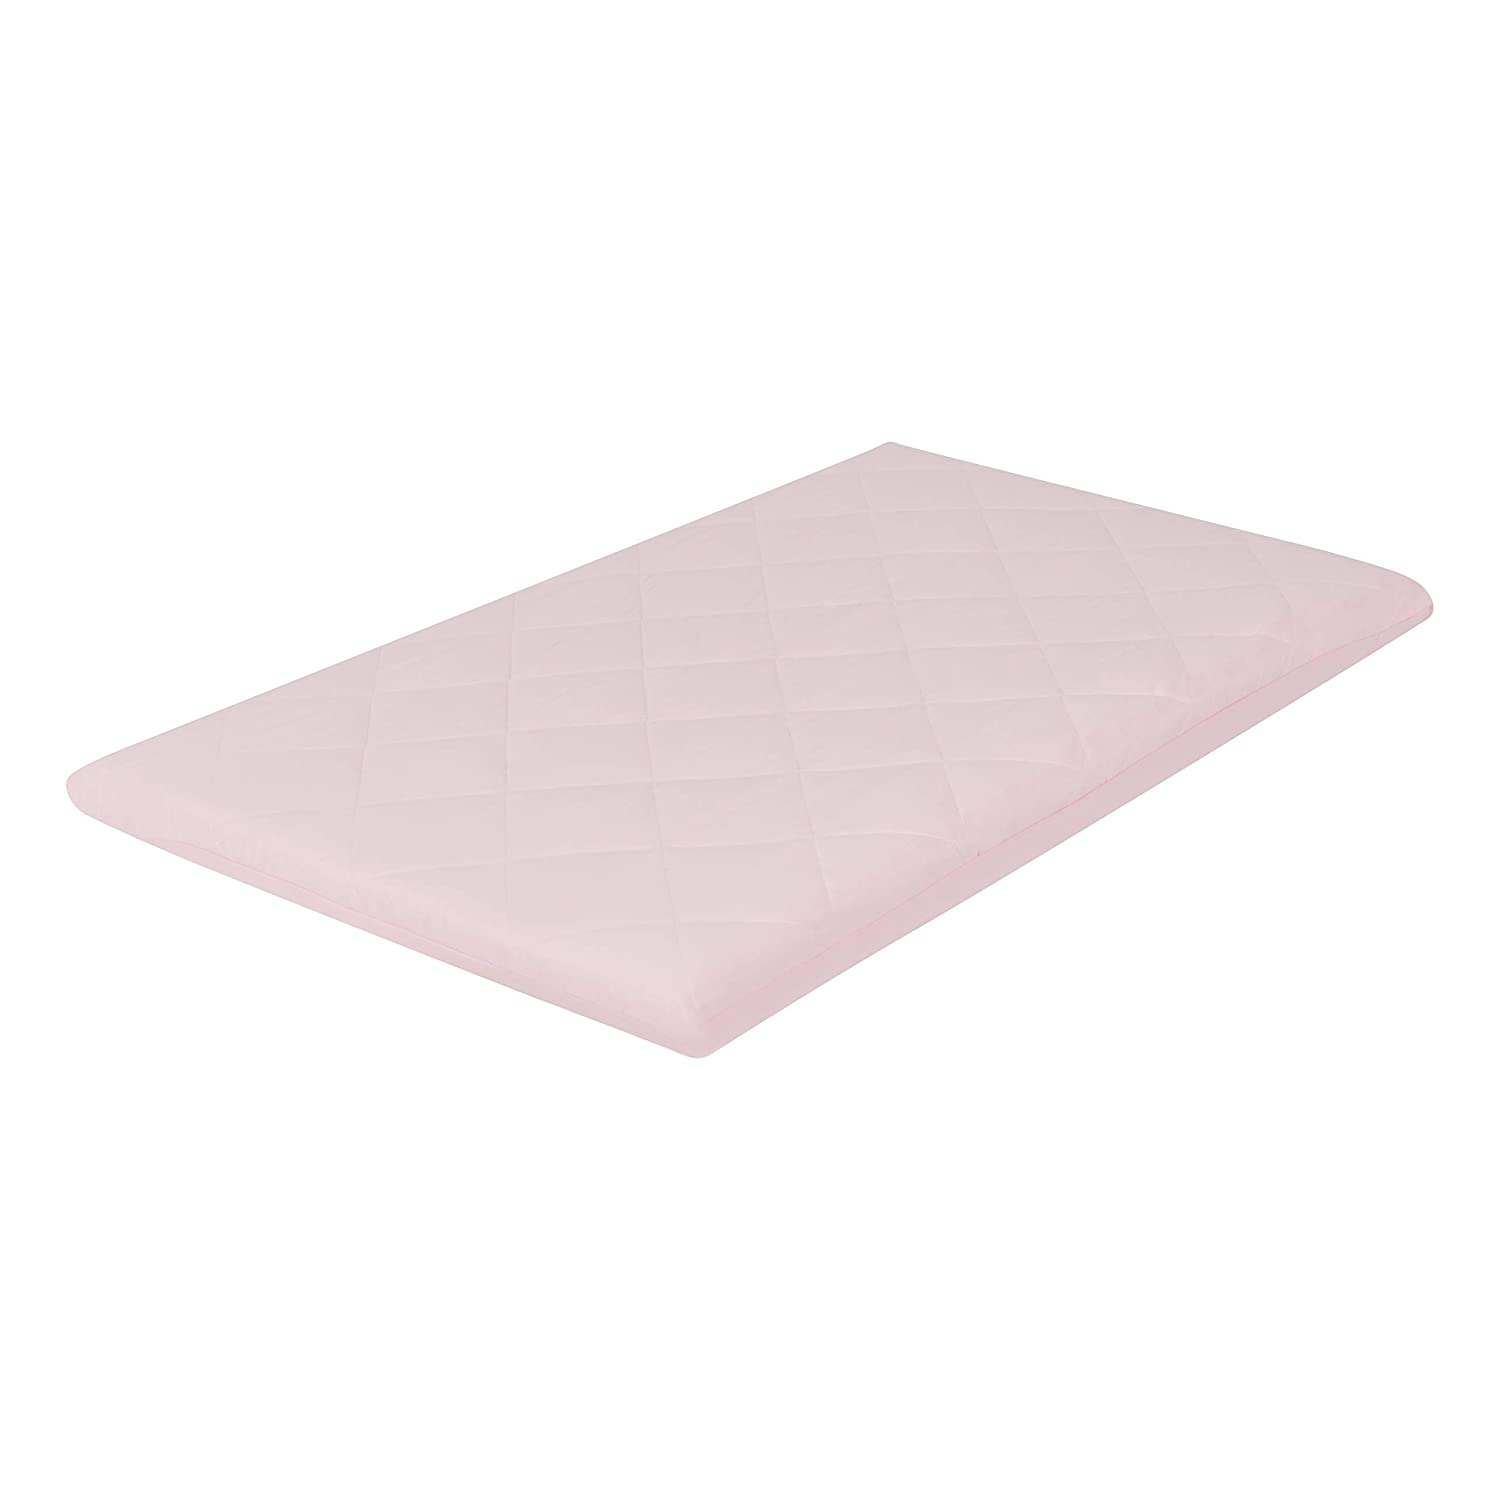 EVERYDAY KIDS Quilted Pack n Play Playard Sheet, Breathable and Hypoallergenic Thick Playpen Sheet, Fits Most Playard - Pink Fitted Sheet